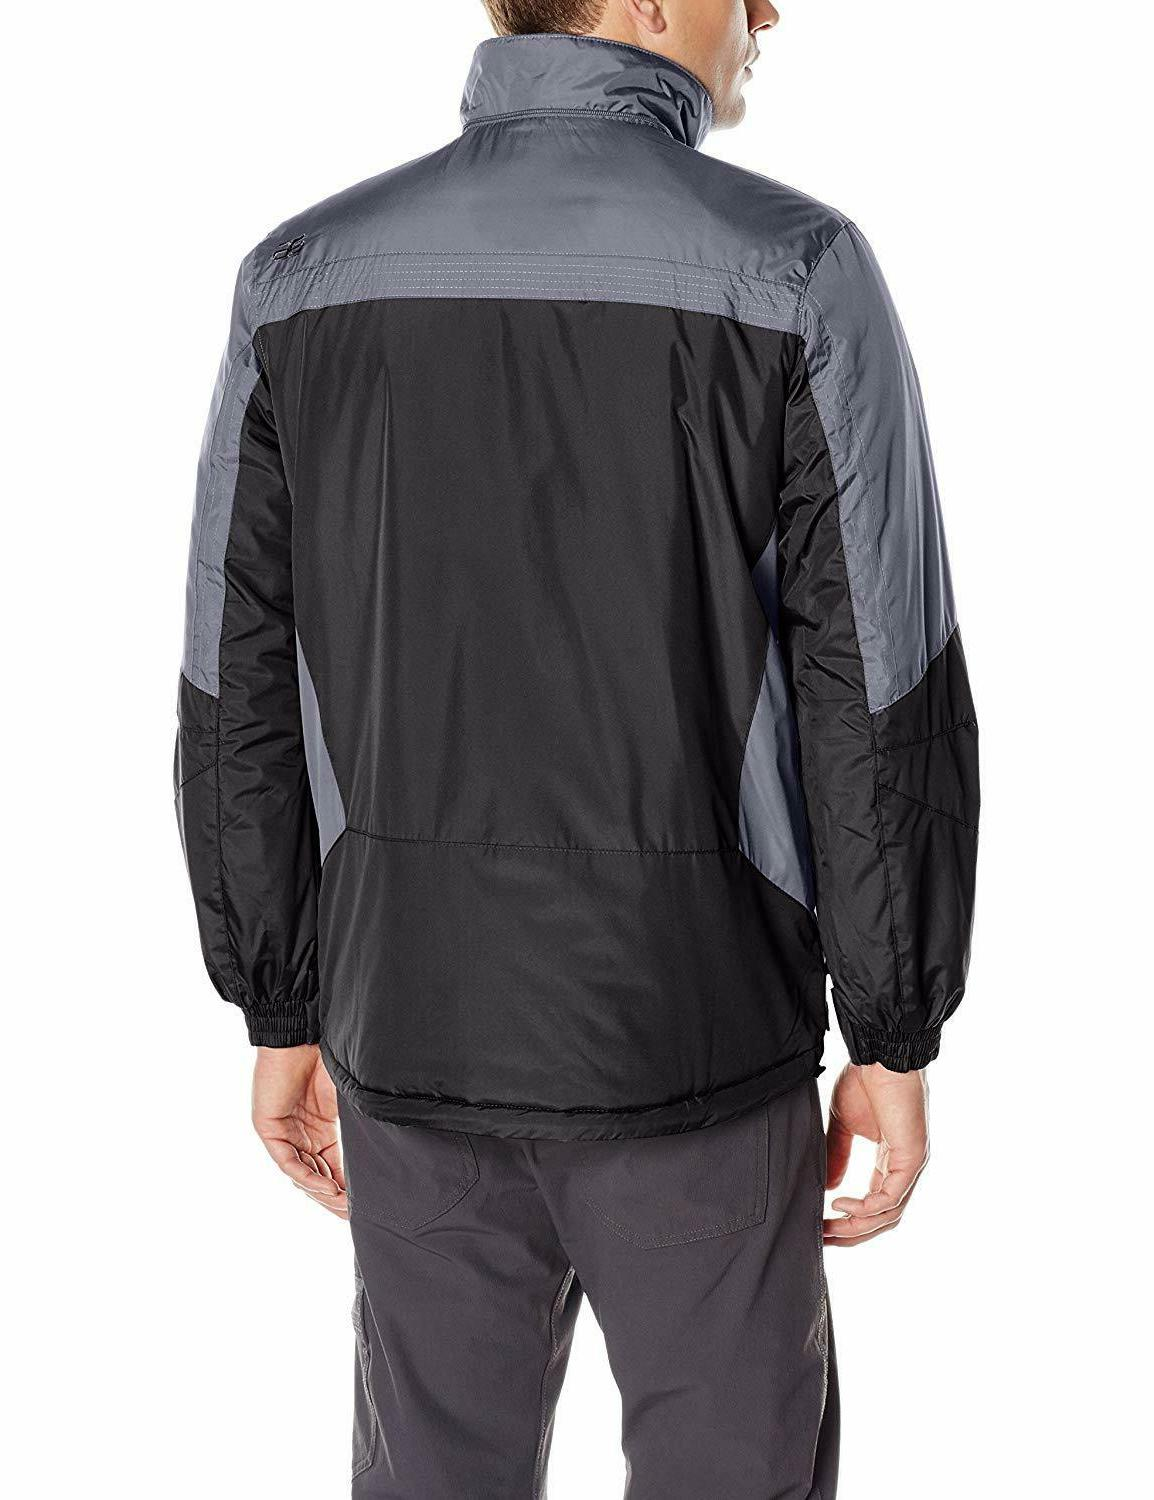 NEW Men's Blackstone Insulated X-Large XL Gray Hood